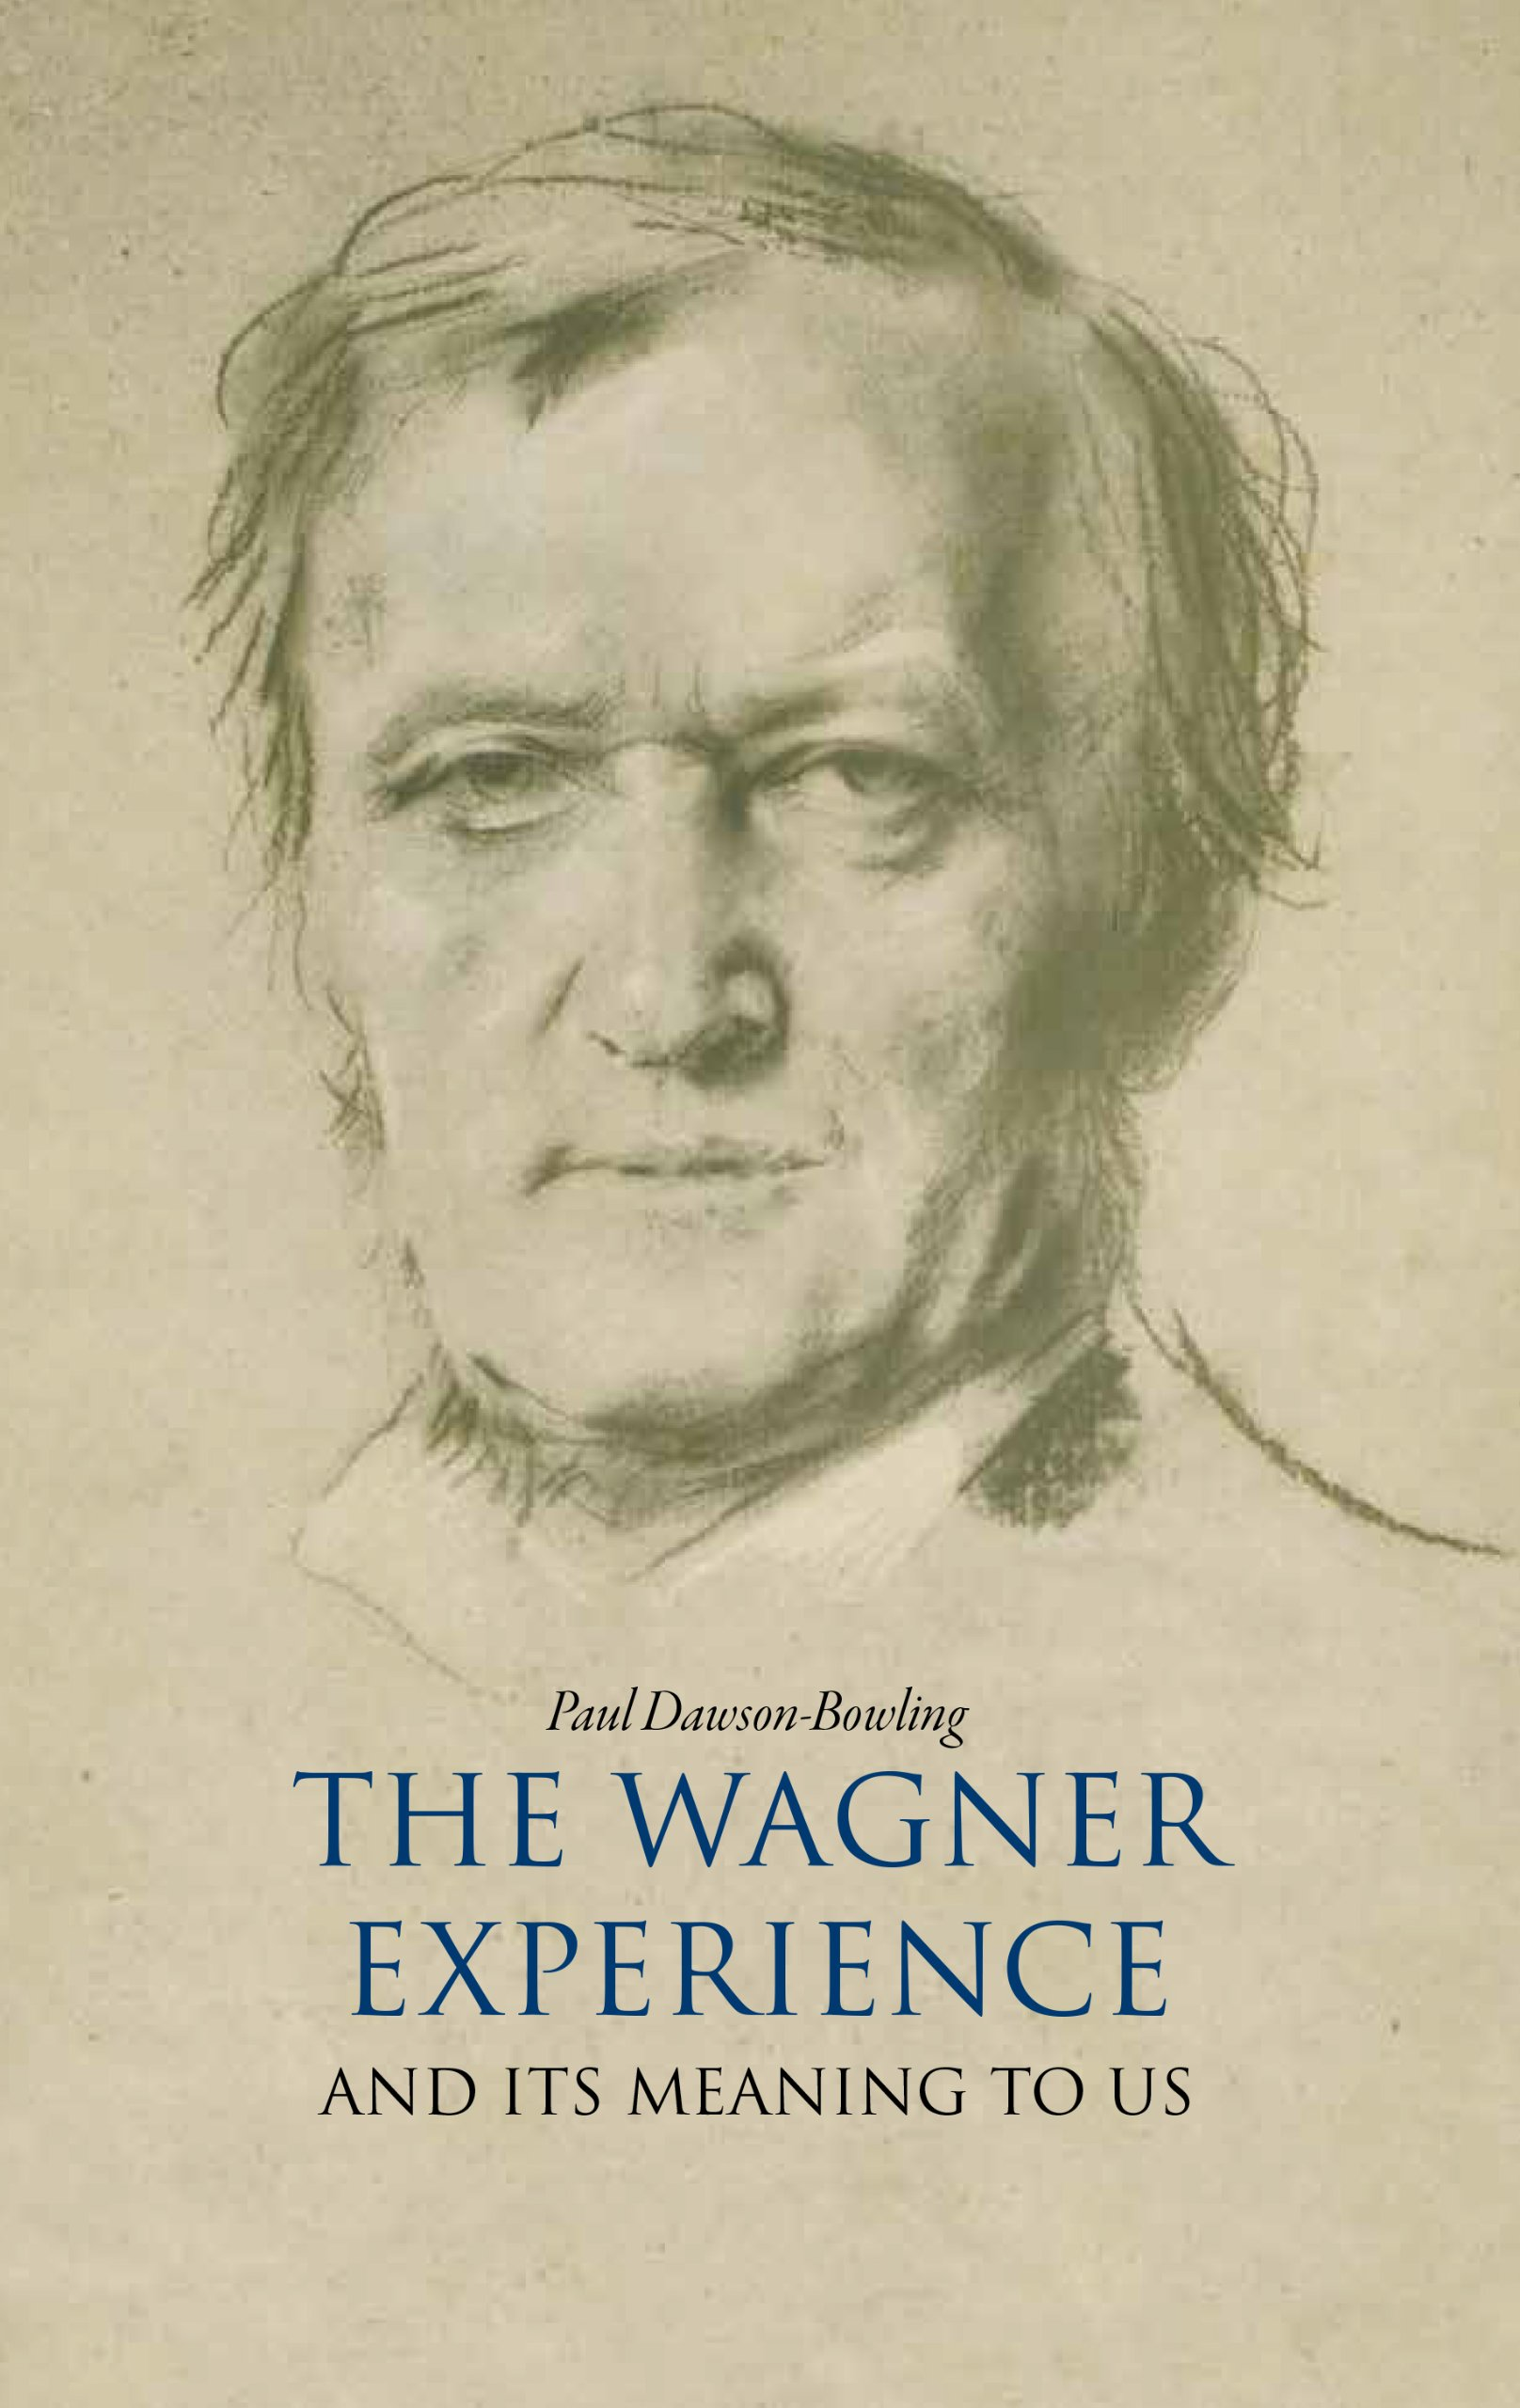 The Wagner Experience: Paul Dawsonbowling: 9781908699435: Amazon: Books